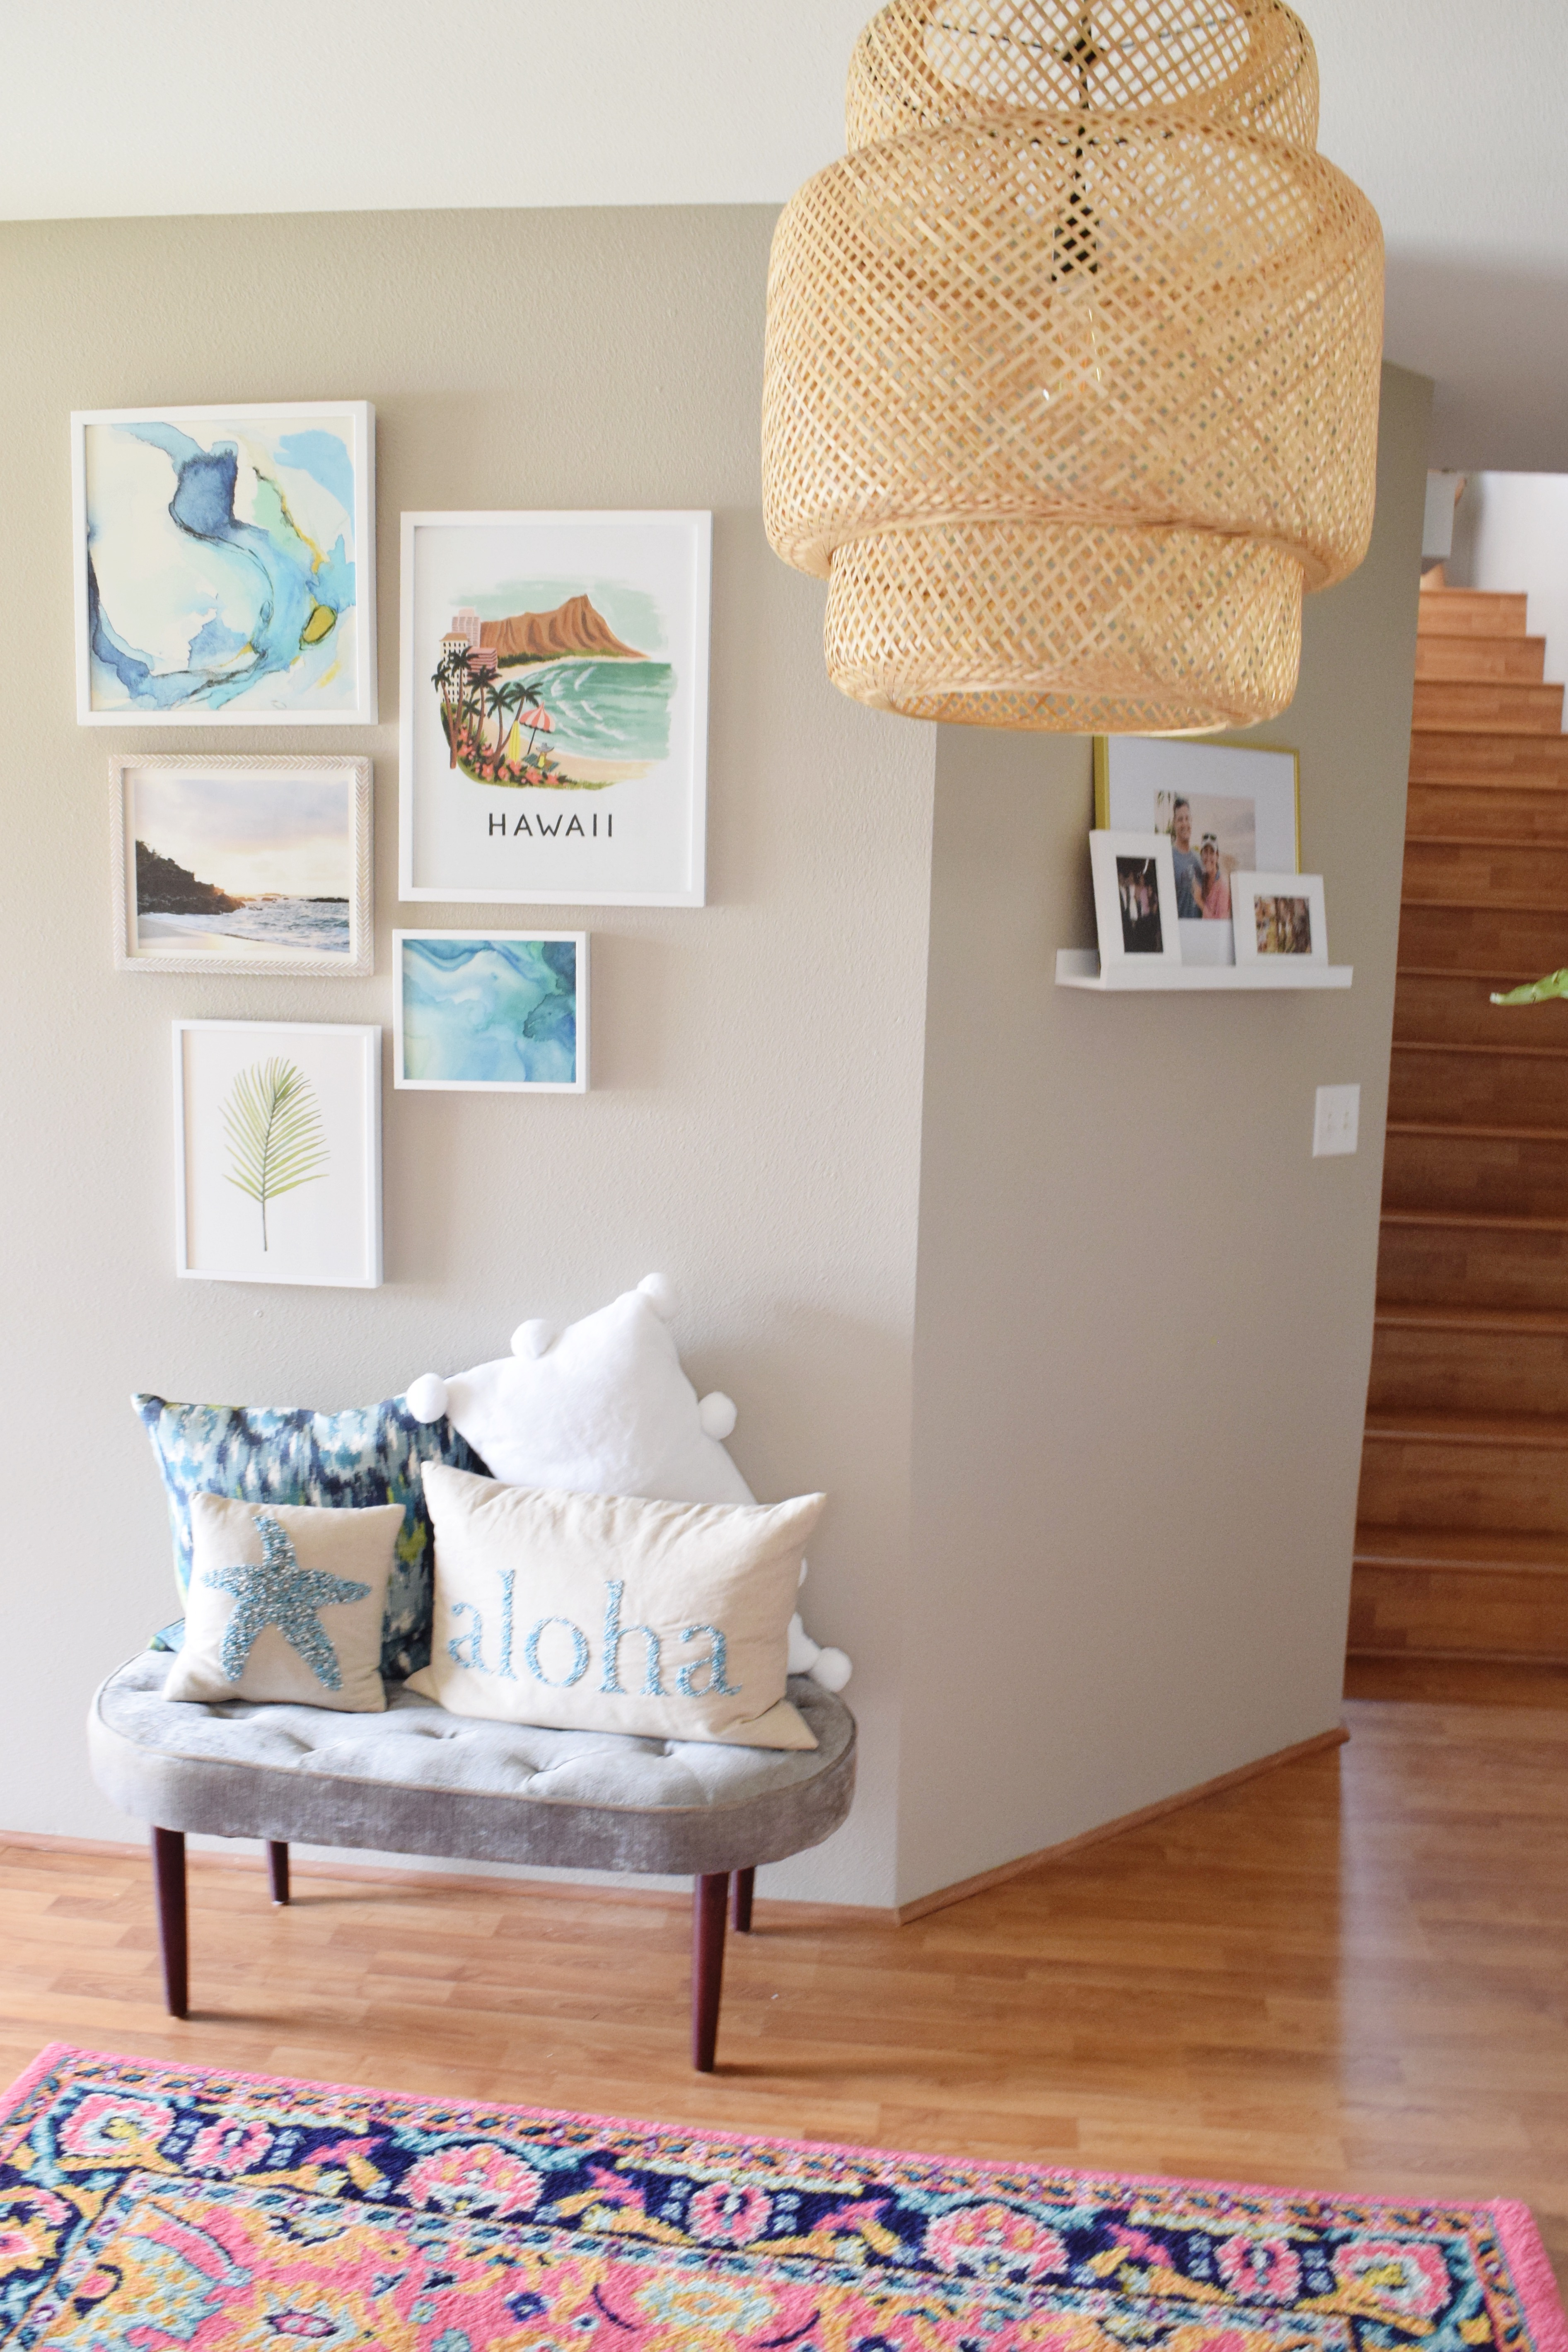 Gallery Wall - Velvet Stool - Aloha Pillows - Photo Ledge - Hawaiian Home Feature on Apartment Therapy - CommuniKait